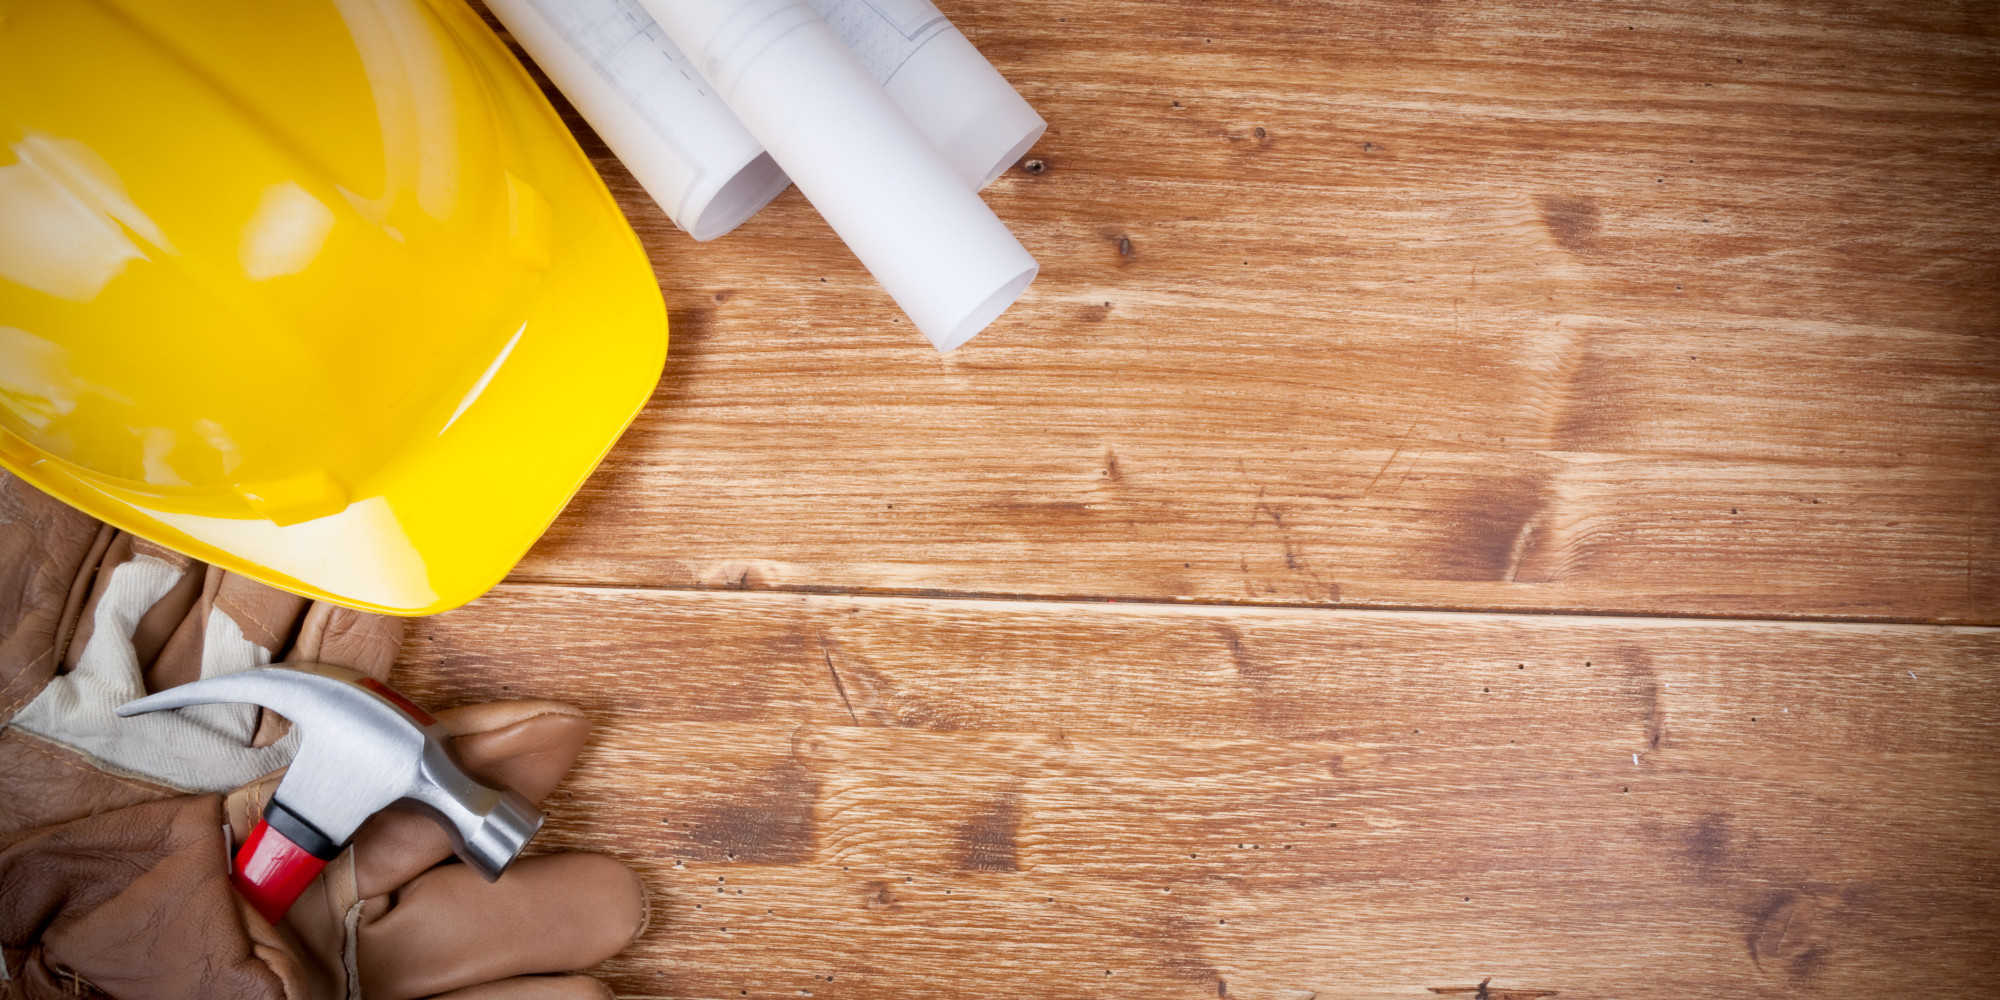 5 Questions To Ask Yourself Before You Call A Contractor